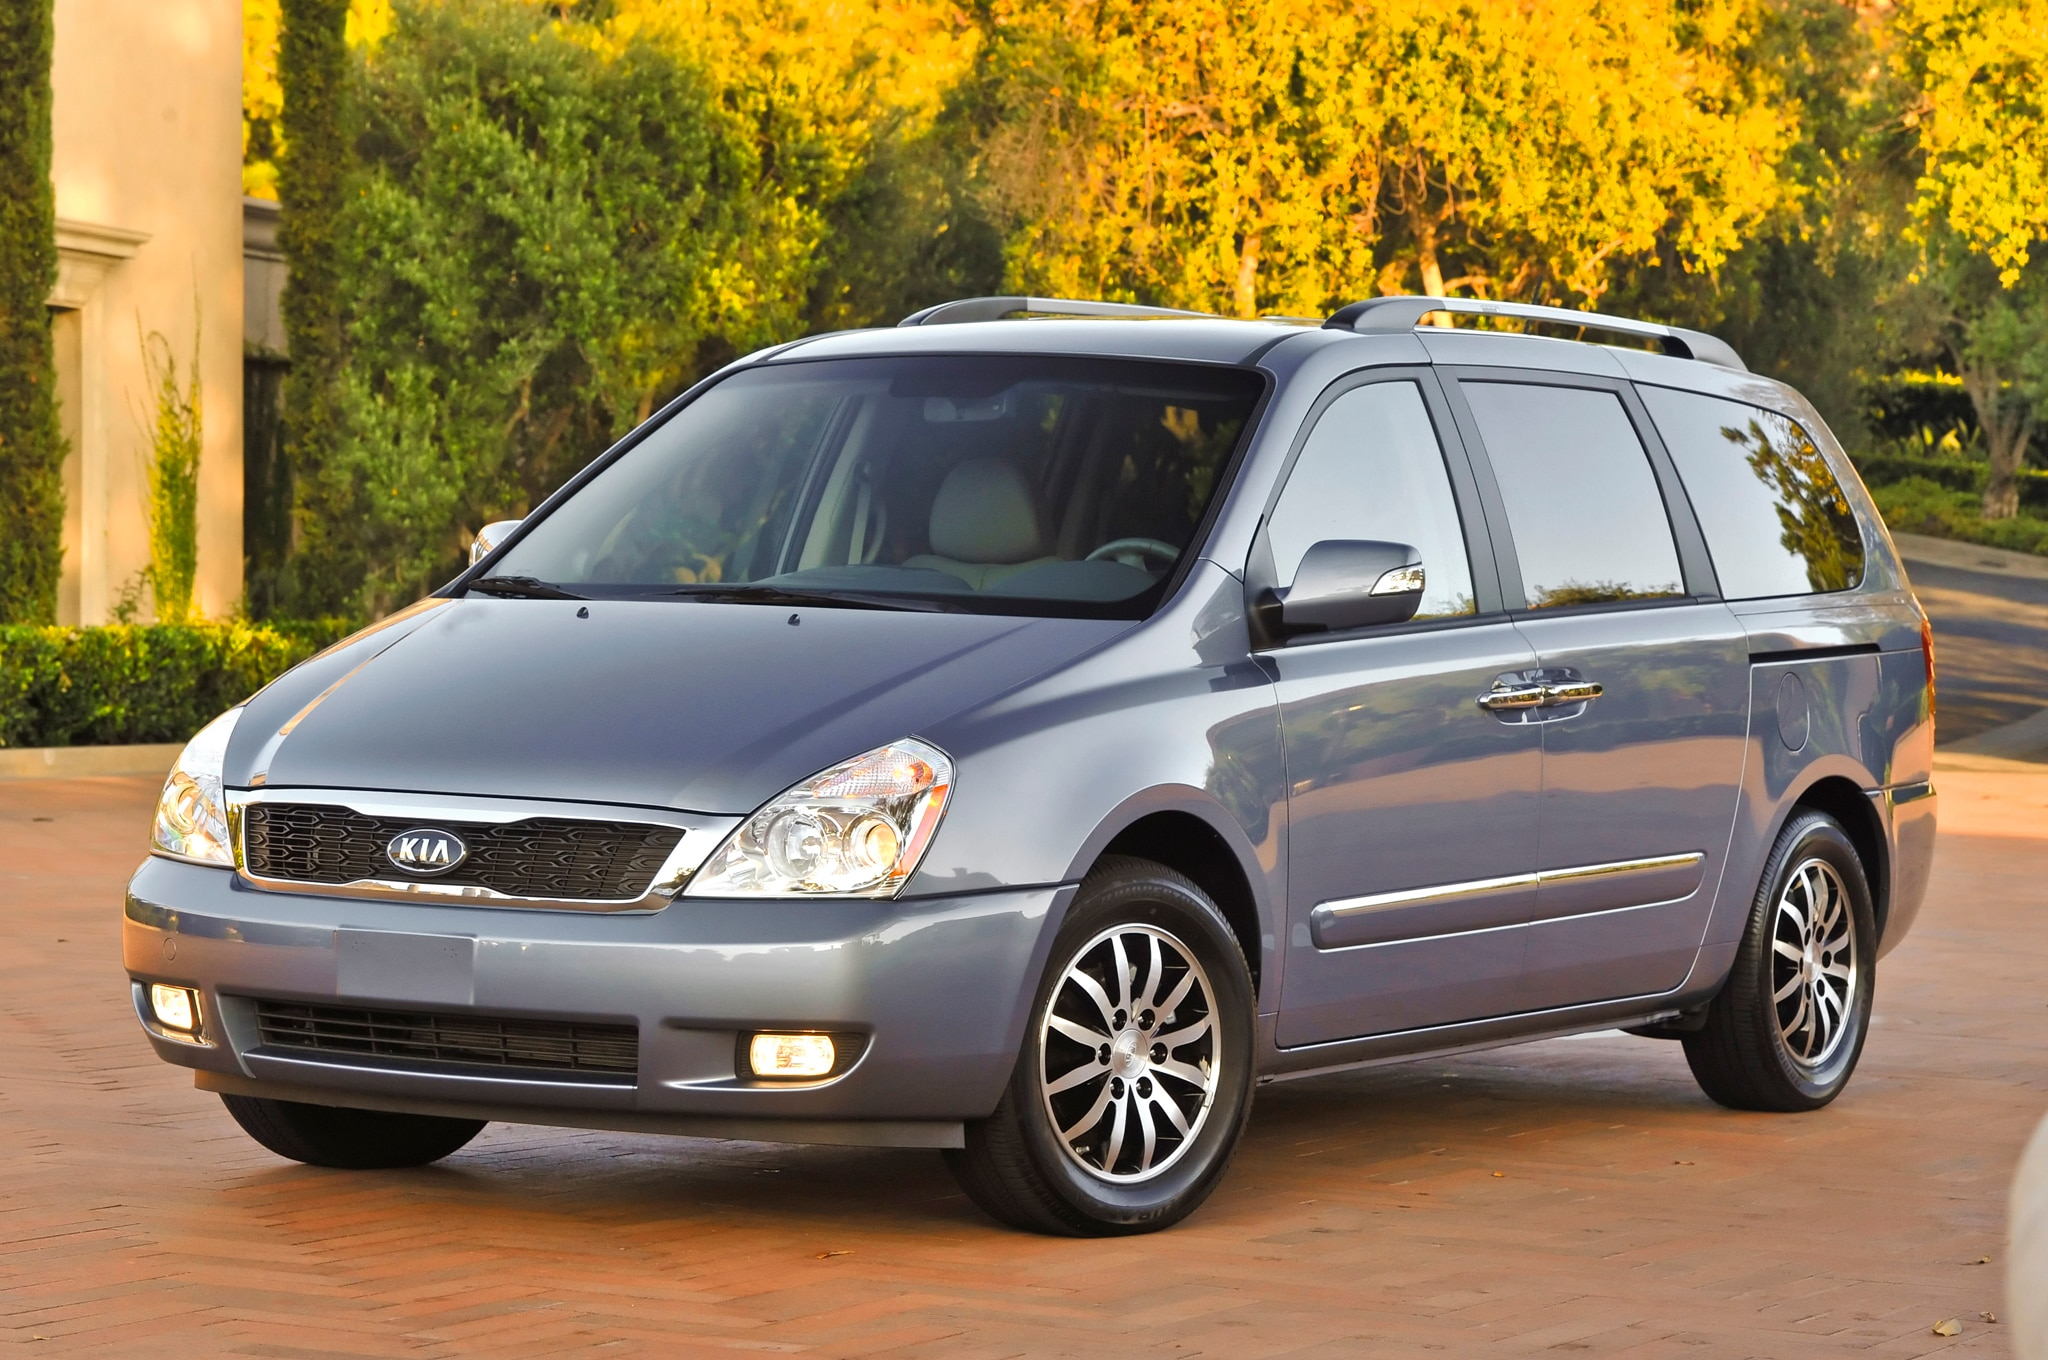 2016 Kia Sedona Wiring Diagram Electrical Diagrams Sportage Fuse Box 2012 Issues All About 2002